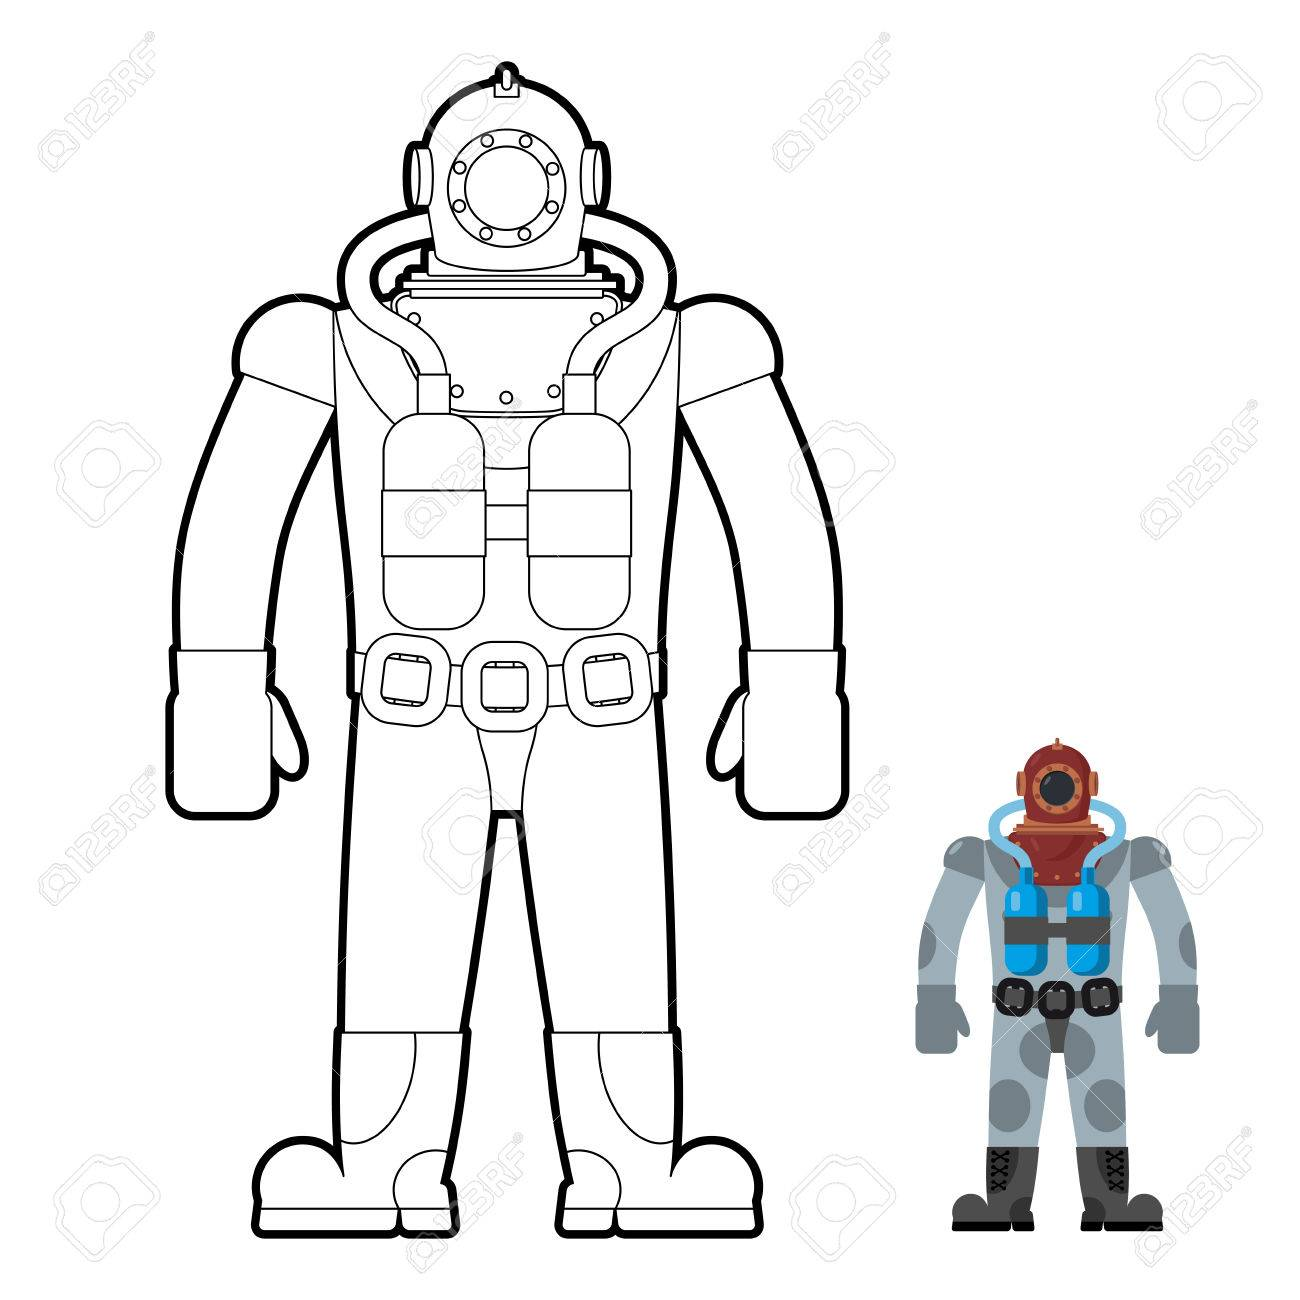 Old Wetsuit Coloring Book Diver In An Suit For Scuba Diving Vector Illustration